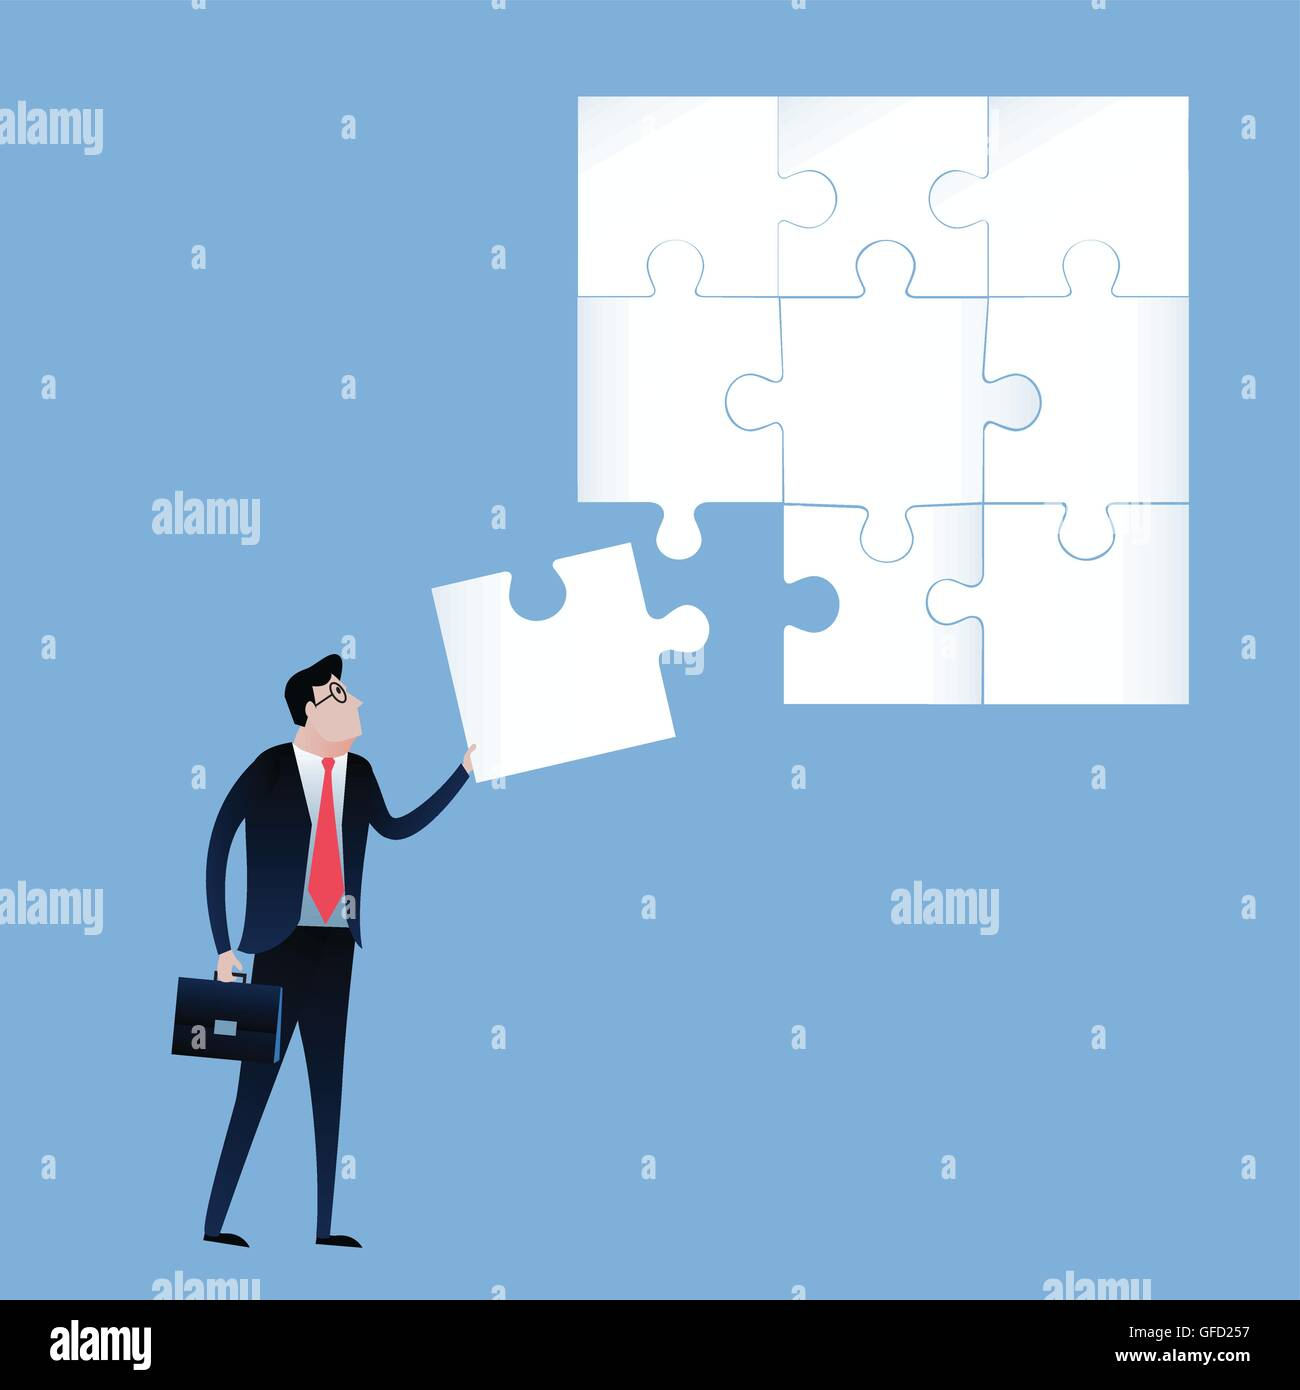 Businessman with final jigsaw piece. business concept illustration vector - Stock Image